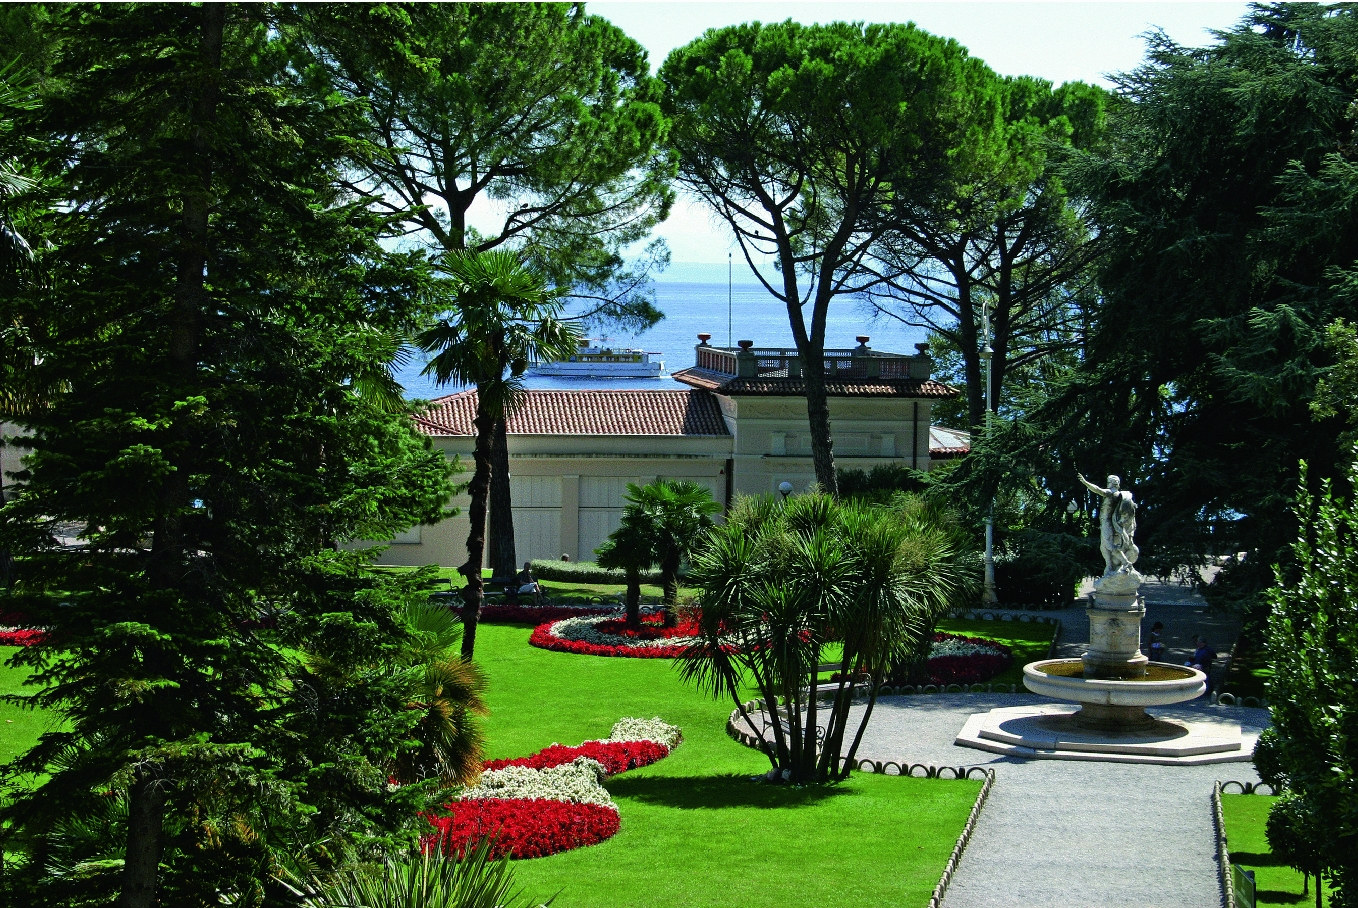 Revitalisation Of Historic Gardens Sustainable Models Of Renewal